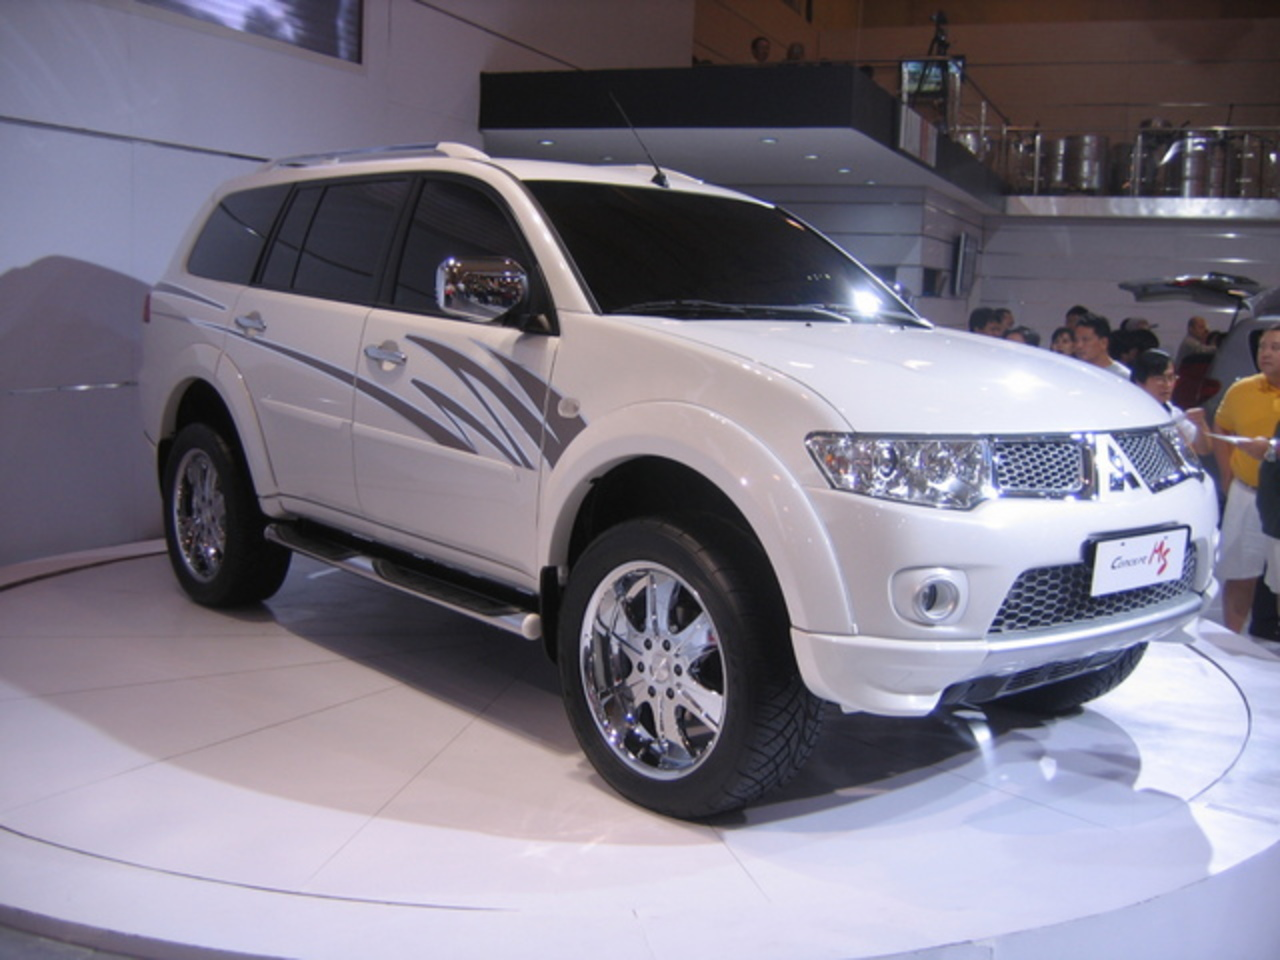 Mitsubishi Pajero Sport SE. View Download Wallpaper. 640x480. Comments